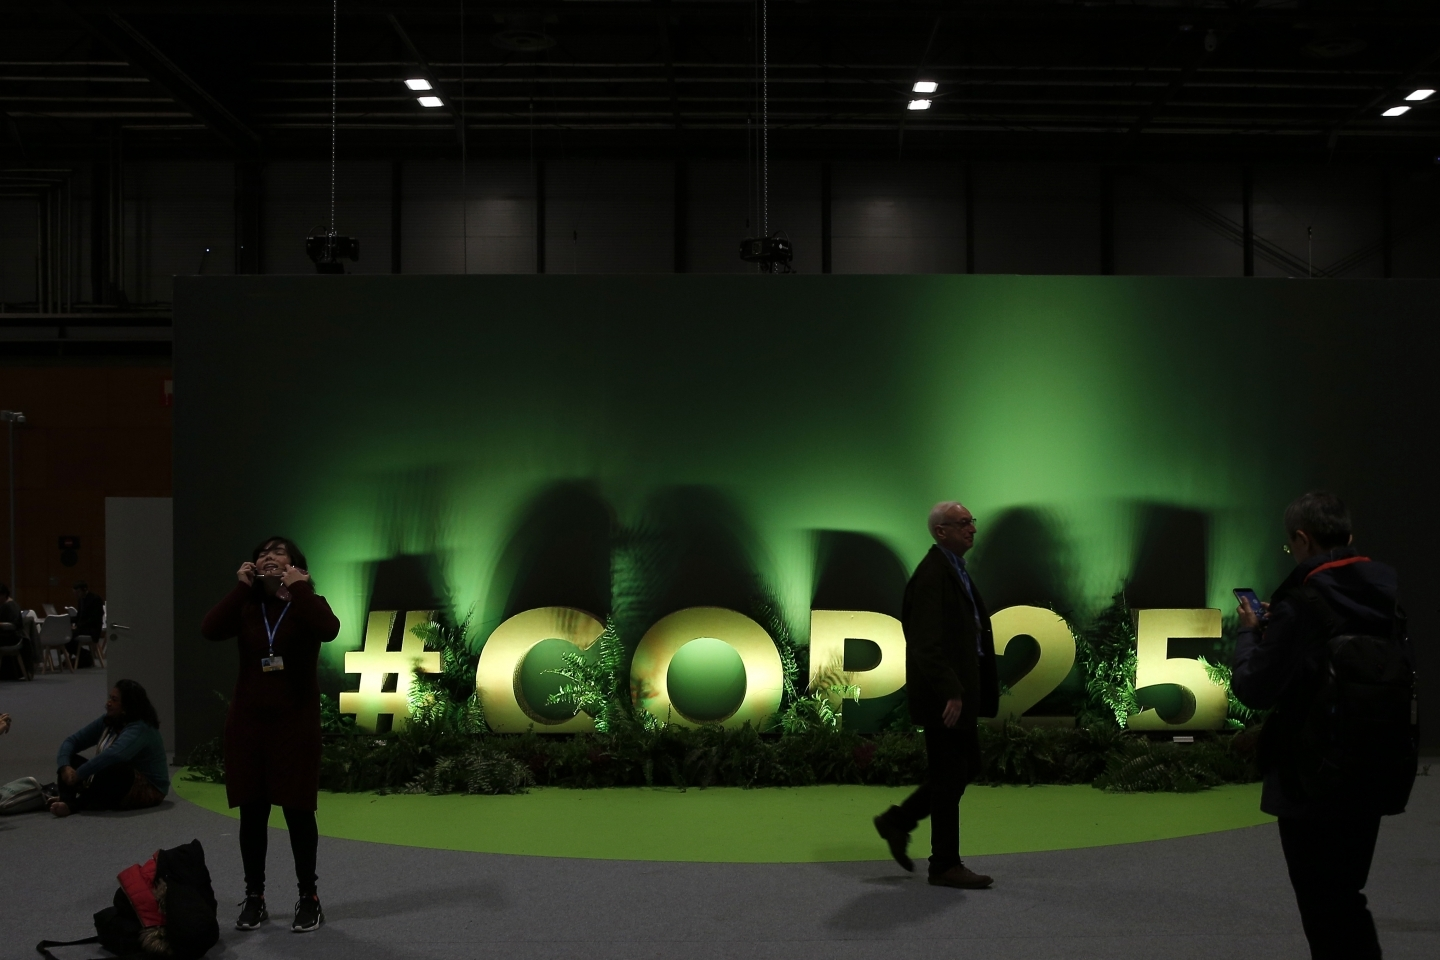 A sign at the COP25 climate talks in Madrid, Spain, Tuesday, December 3, 2019. (AP Photo/Manu Fernandez)